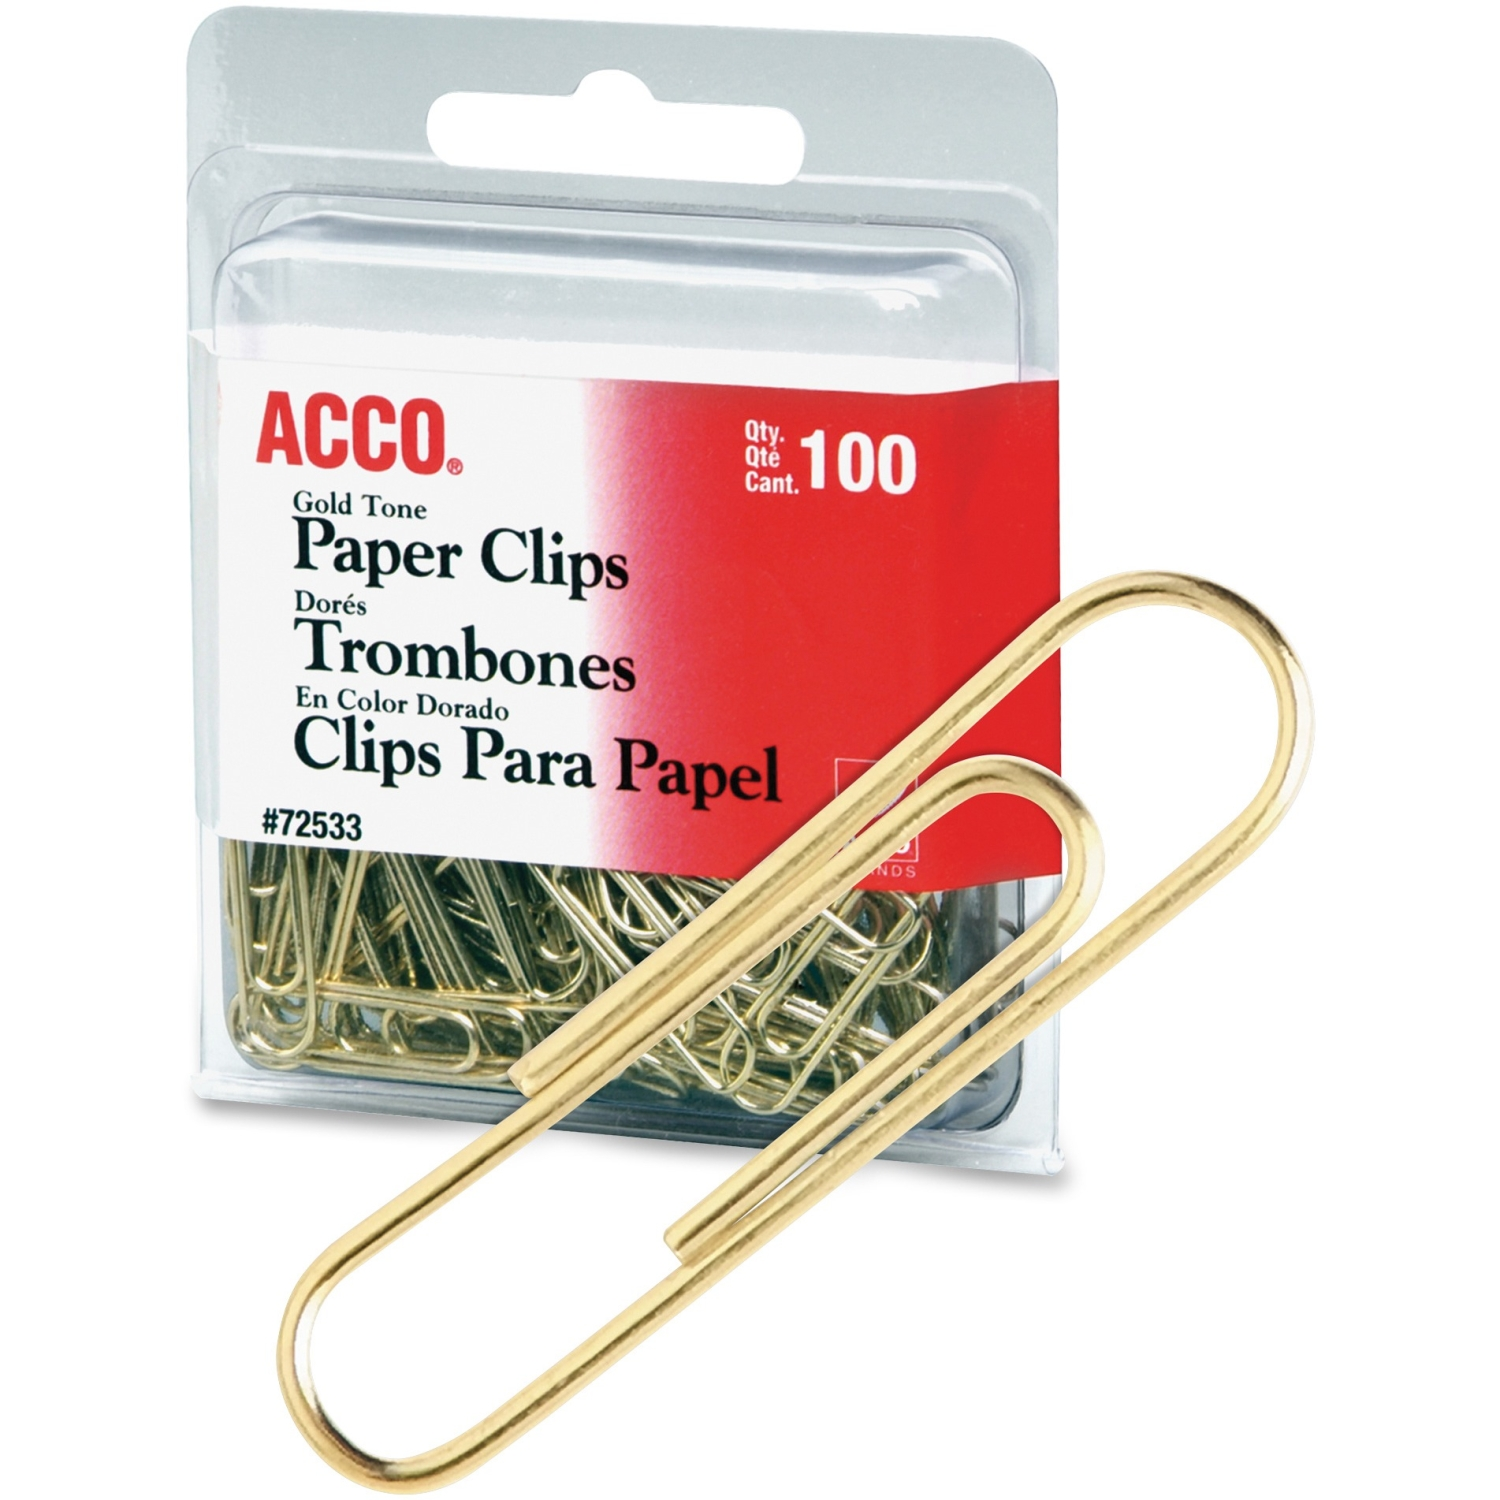 Acco Gold Tone Paper Clips - Regular - No. 2 - 10 Sheet Capacity - For Office, Home, School, Document, Paper - Sturdy, Flex Resistant, Bend Resistant - 400 / Pack - Gold (acc-72554)